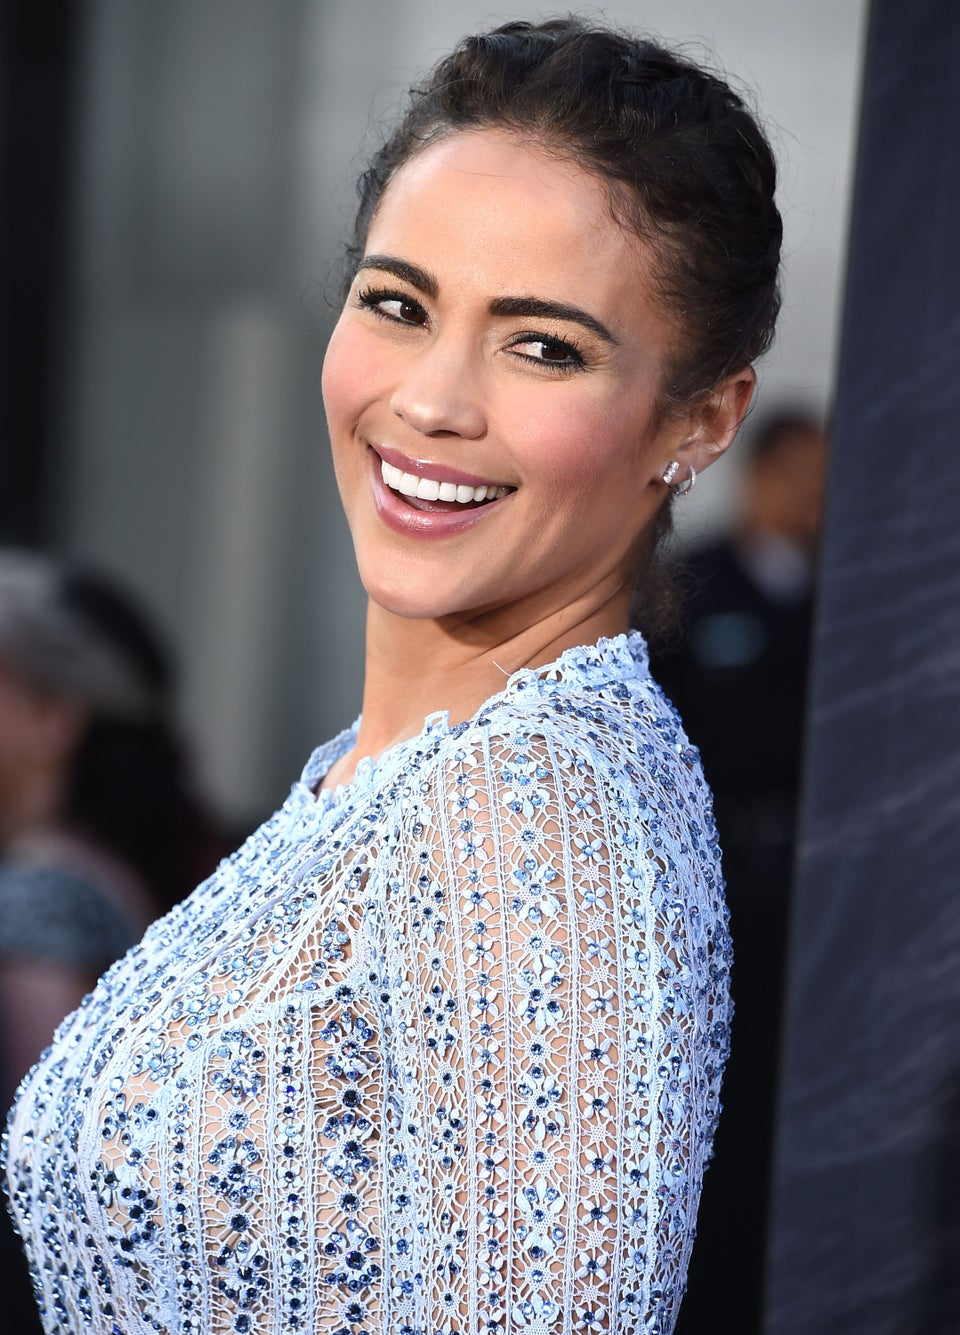 Paula Patton Has A New Man! The Actress Opens Up About Her New 'Suburban' Romance